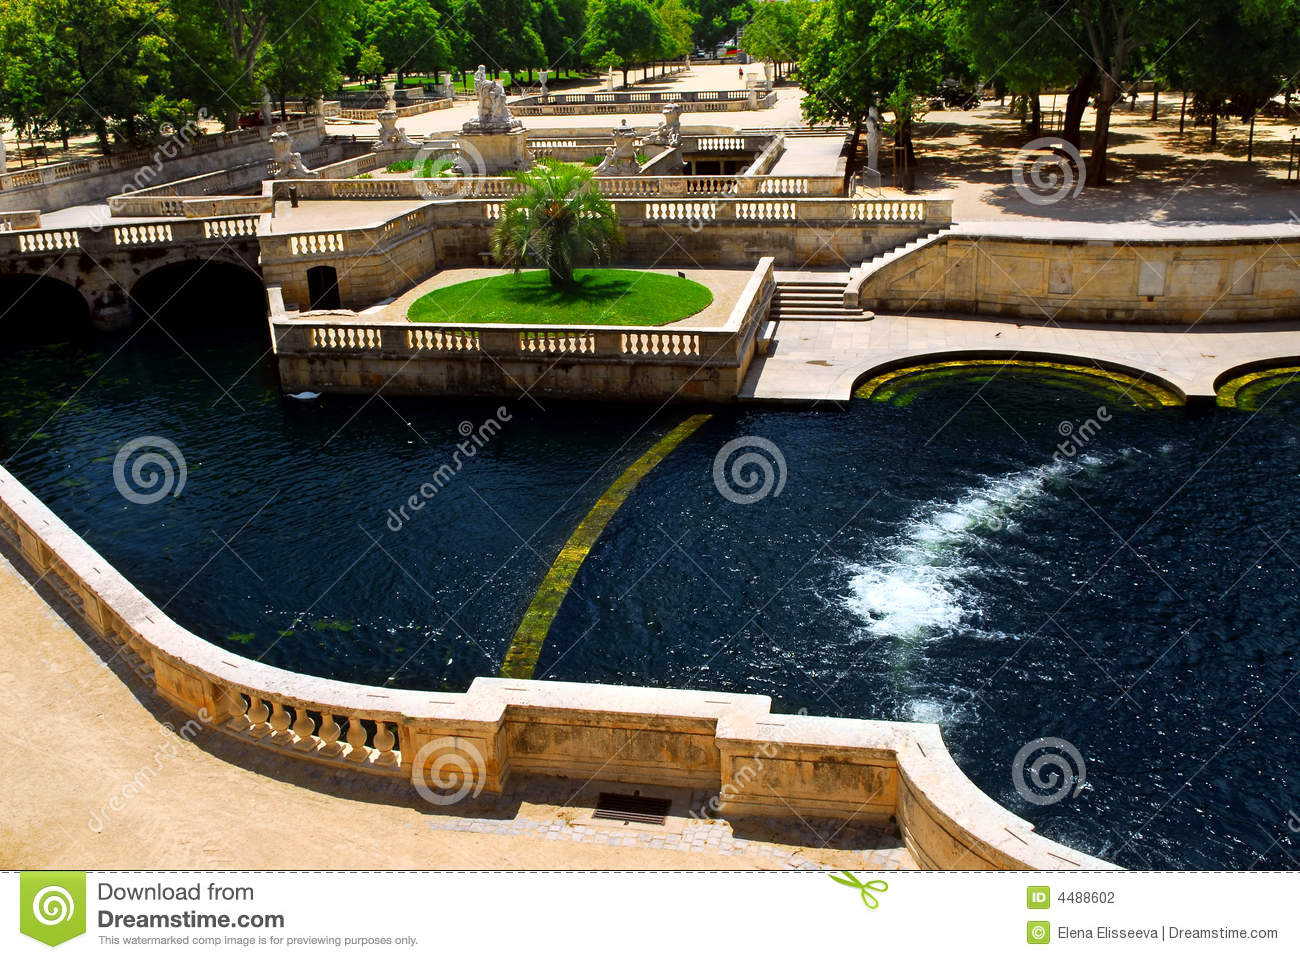 Jardin de la fontaine in nimes france stock photography image 4488602 - Jardin de la fontaine nimes limoges ...